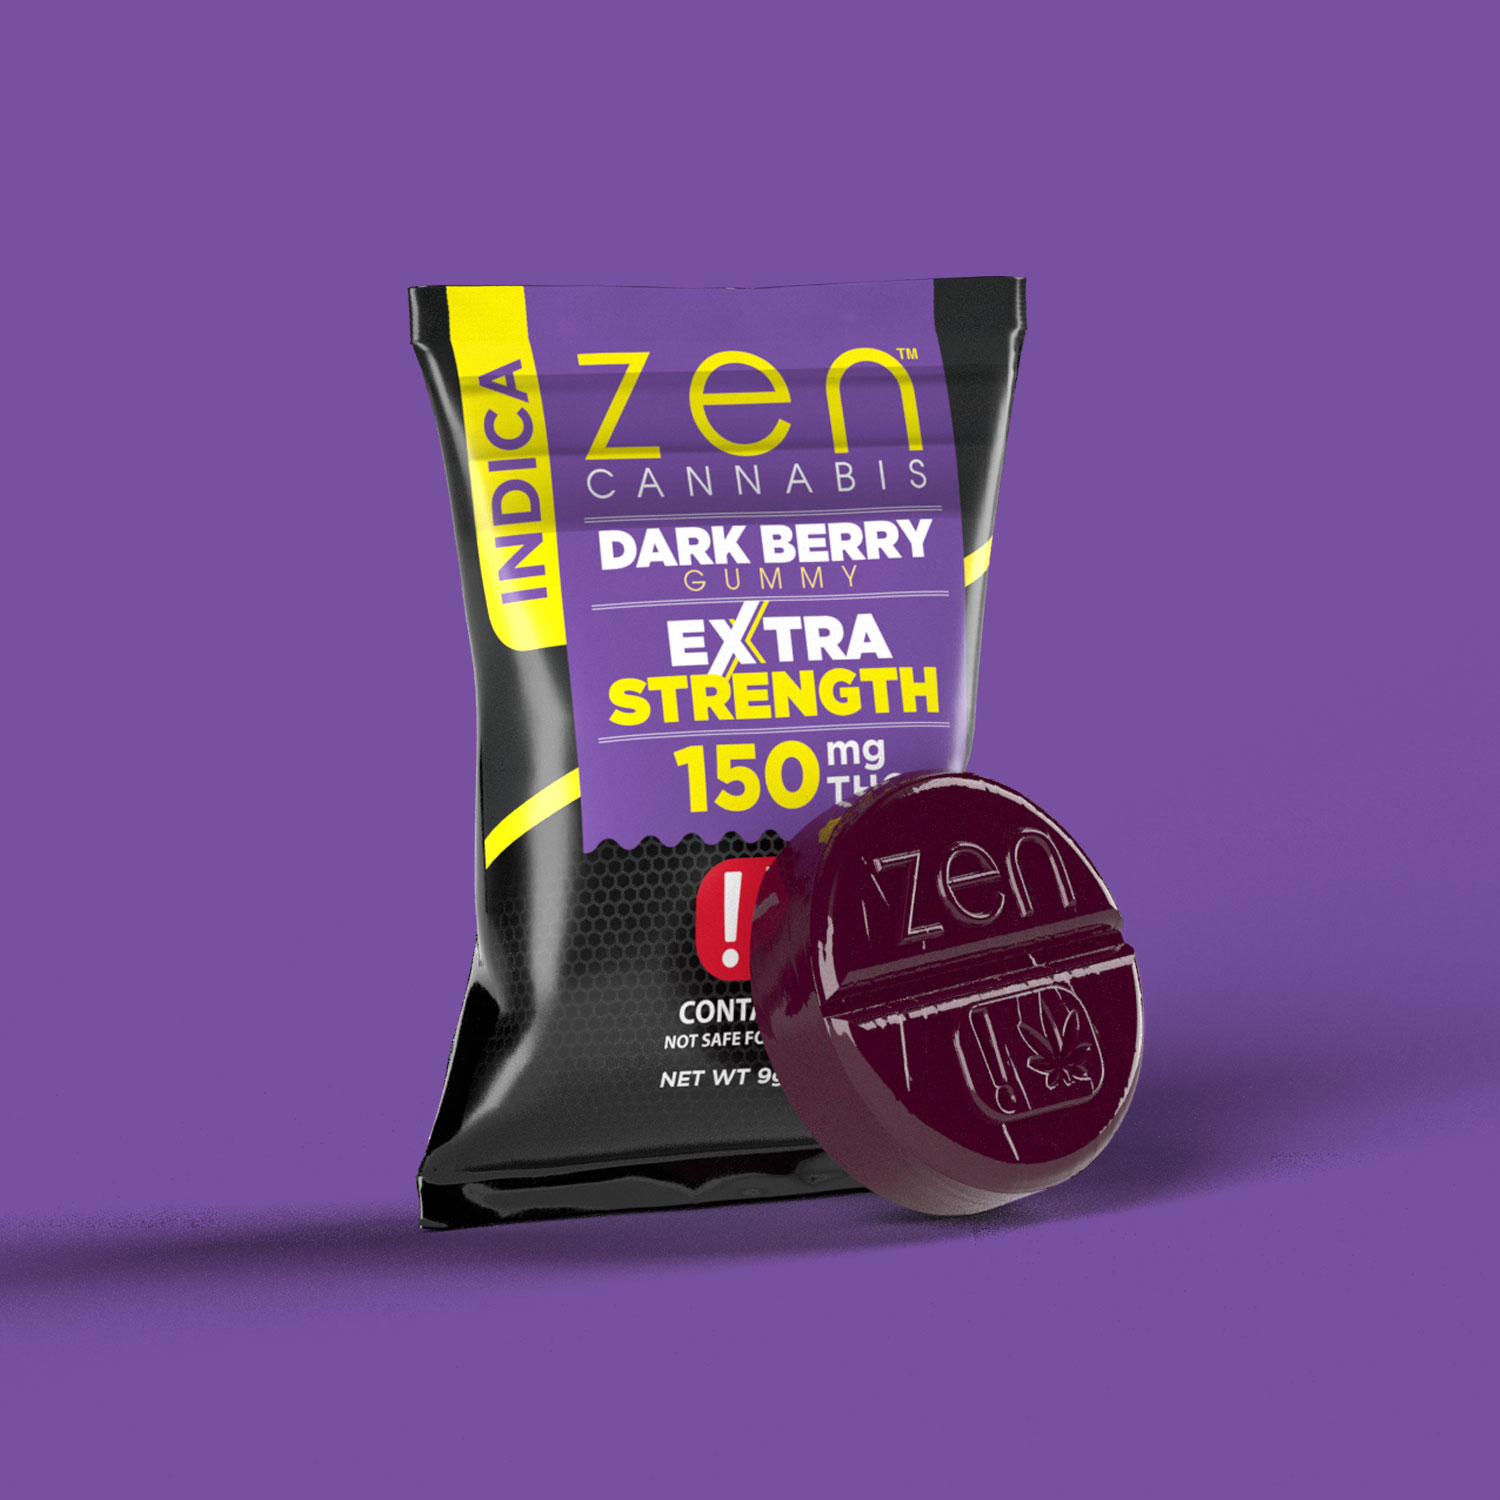 EXTRA STRENGTH  INDICA    150mg THC  A lusciously sweet and tart burst of dark berry flavor. Gluten & fat-free